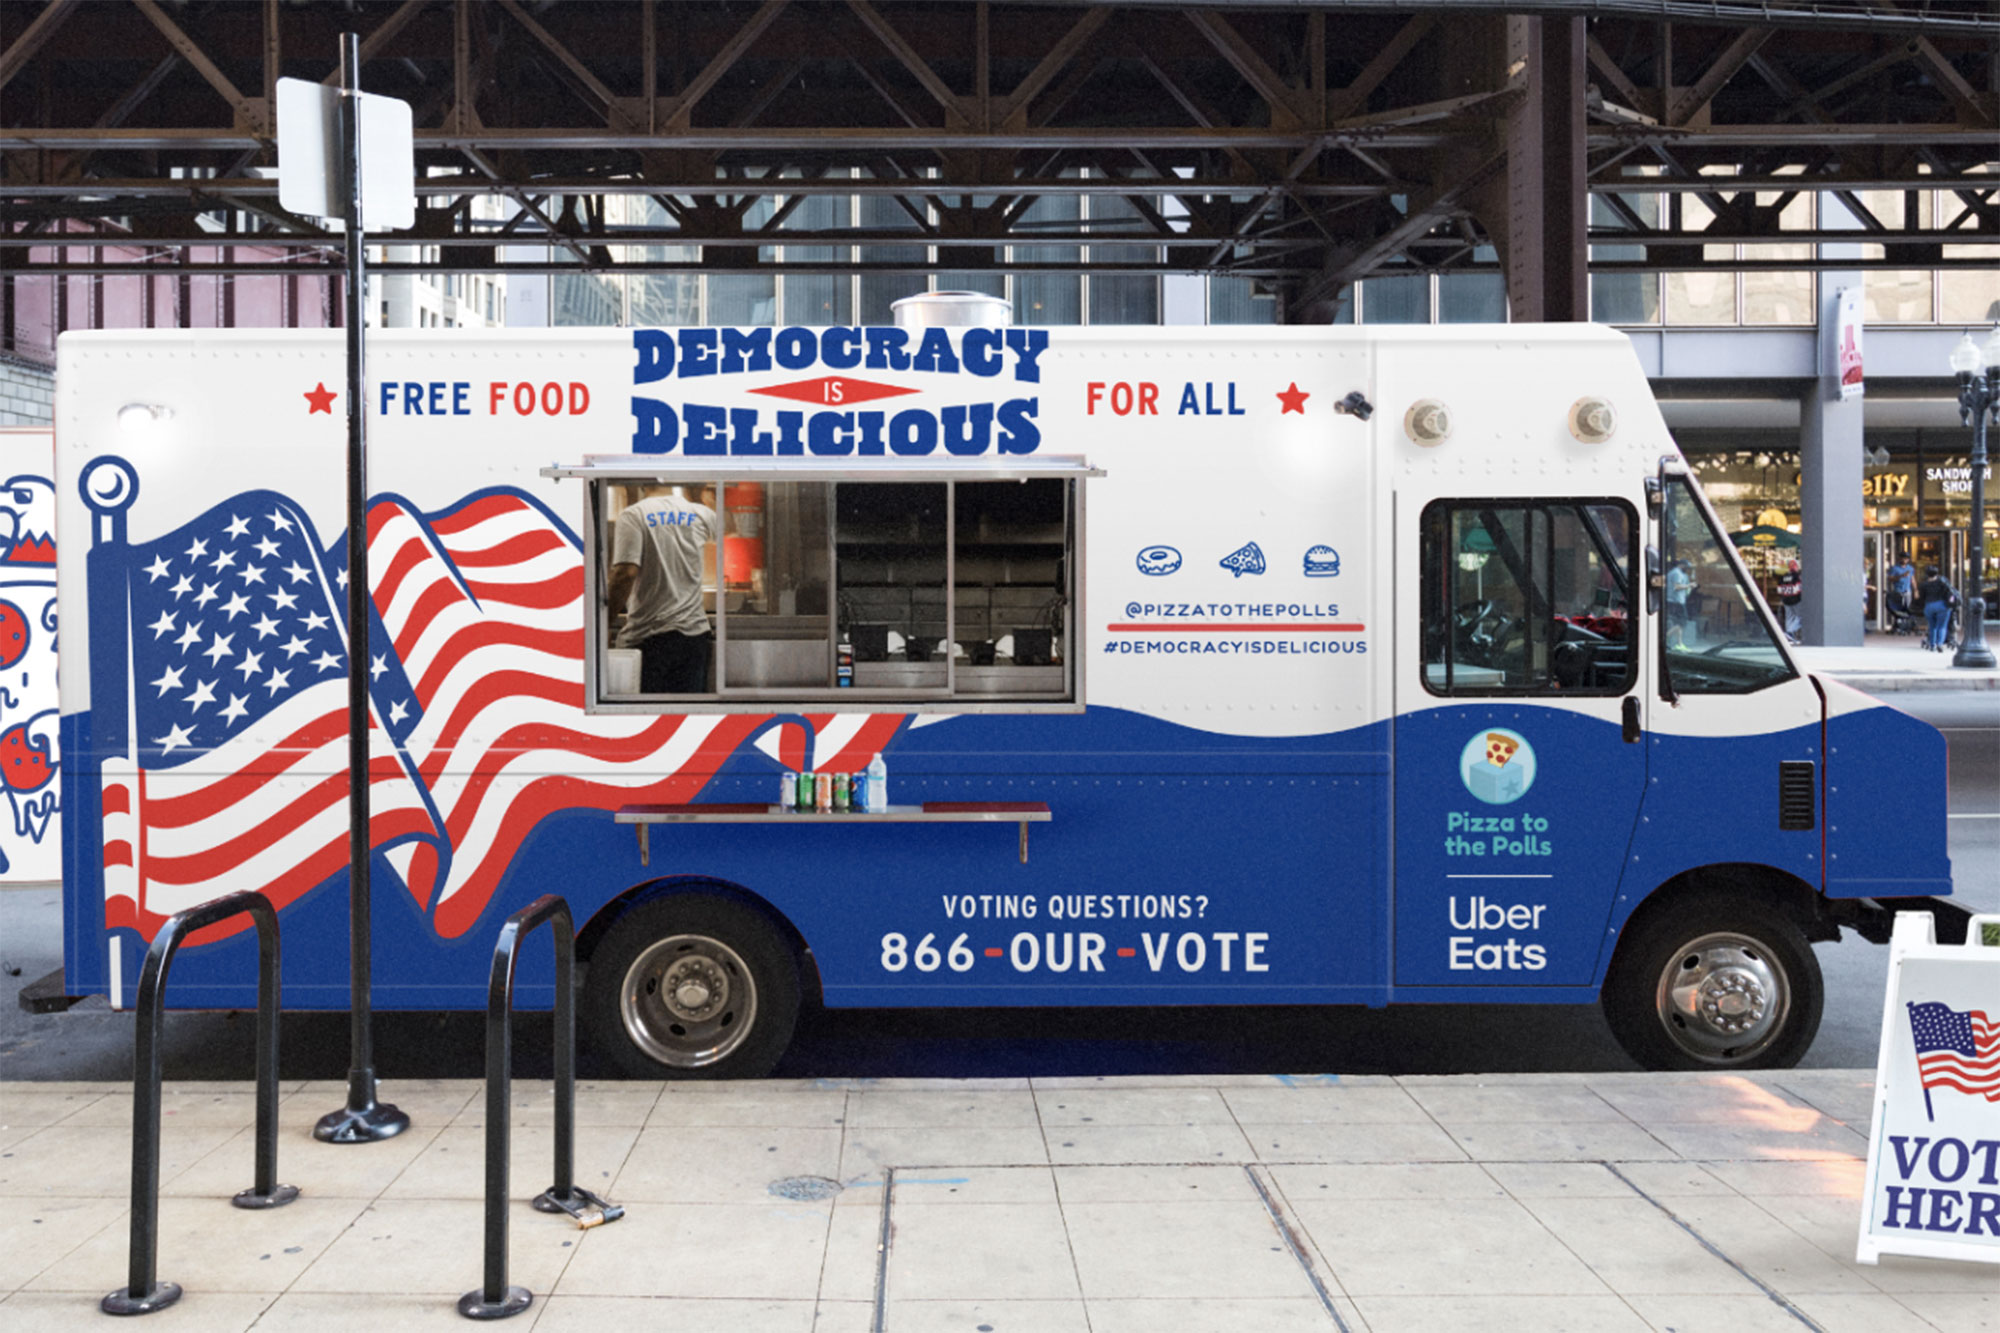 An Uber Eats truck supplying food for voters on election day